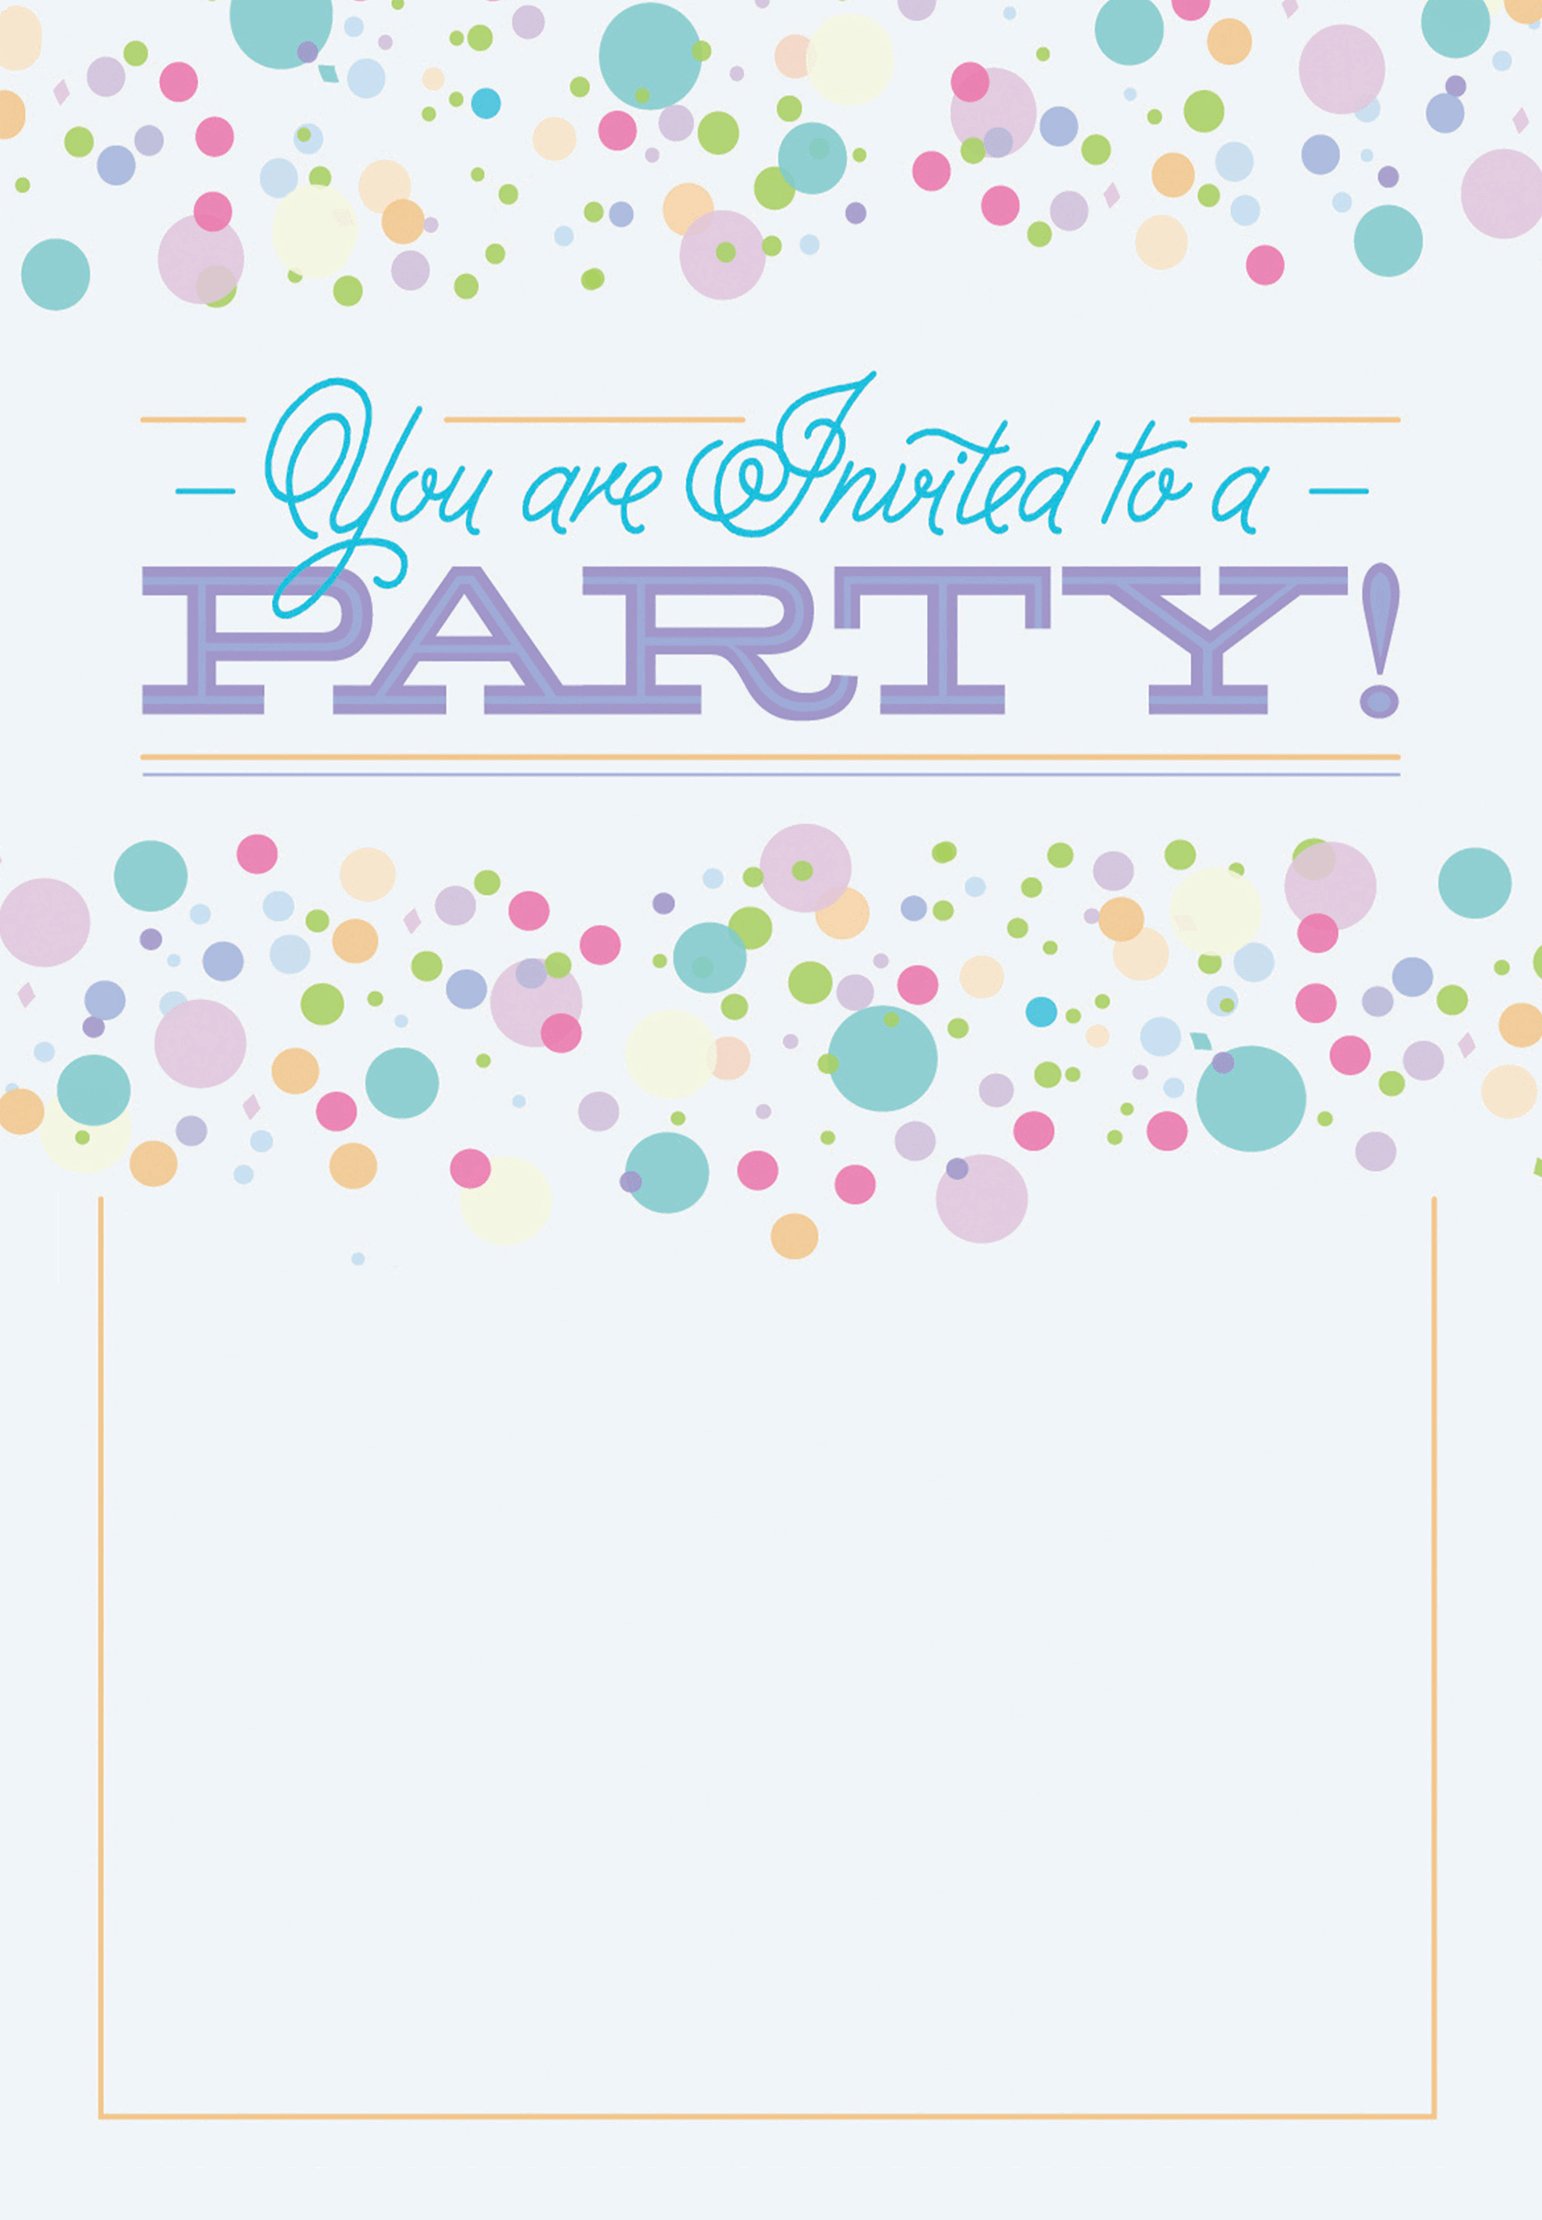 Polka Dots - Free Printable Party Invitation Template | Greetings - Free Printable Polka Dot Birthday Party Invitations